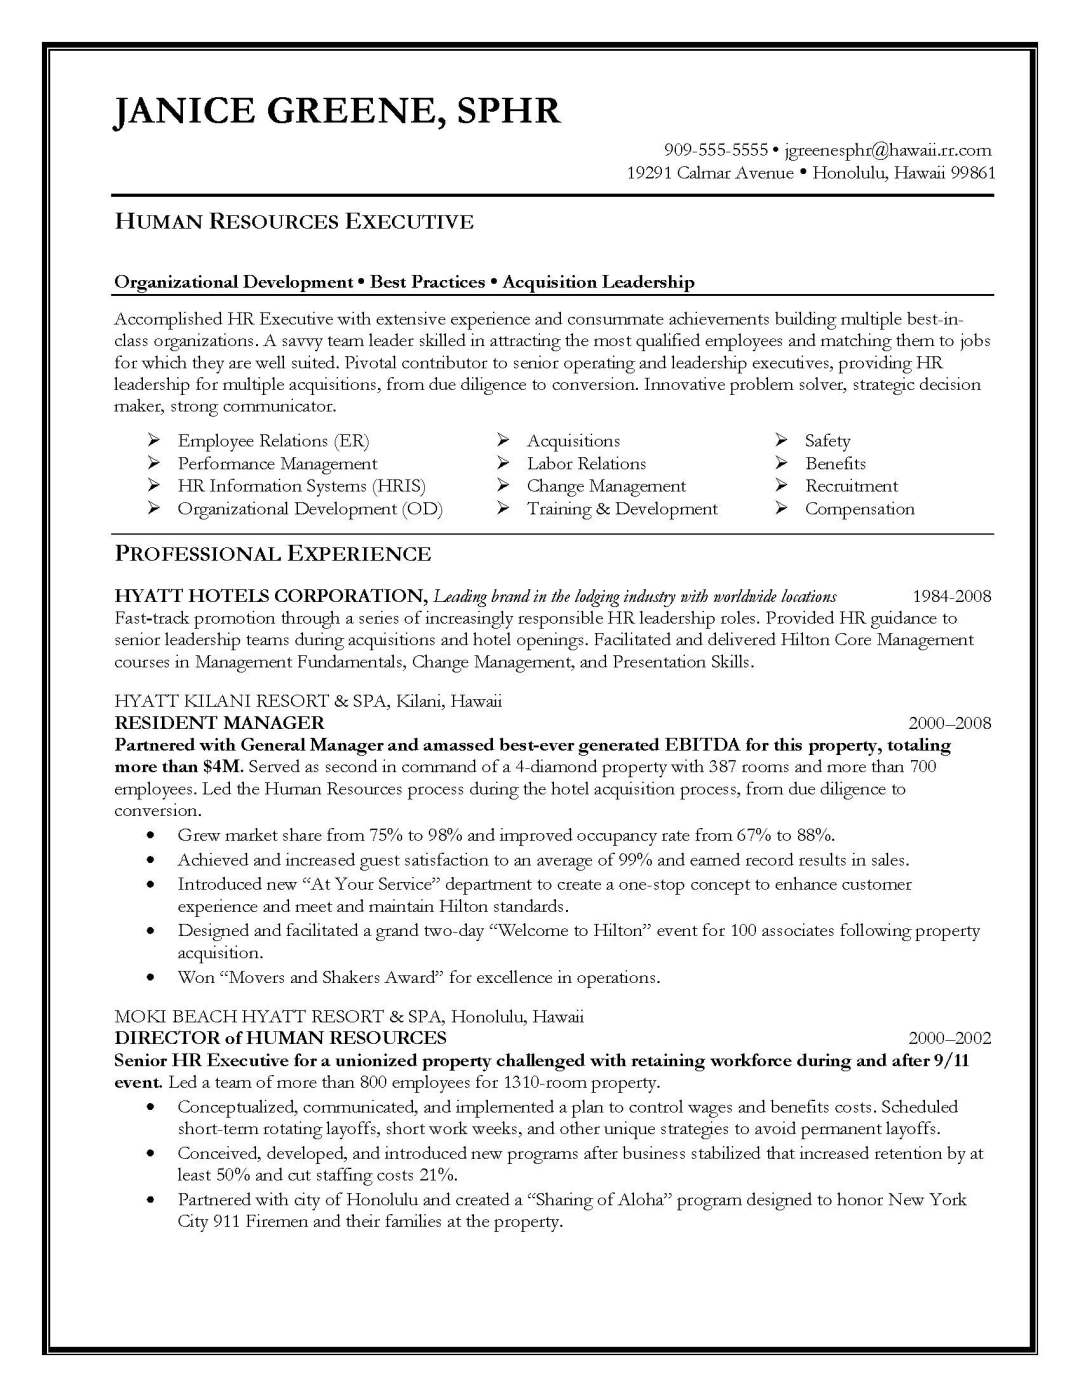 human resources executive resume sample, provided by Elite Resume Writing Services